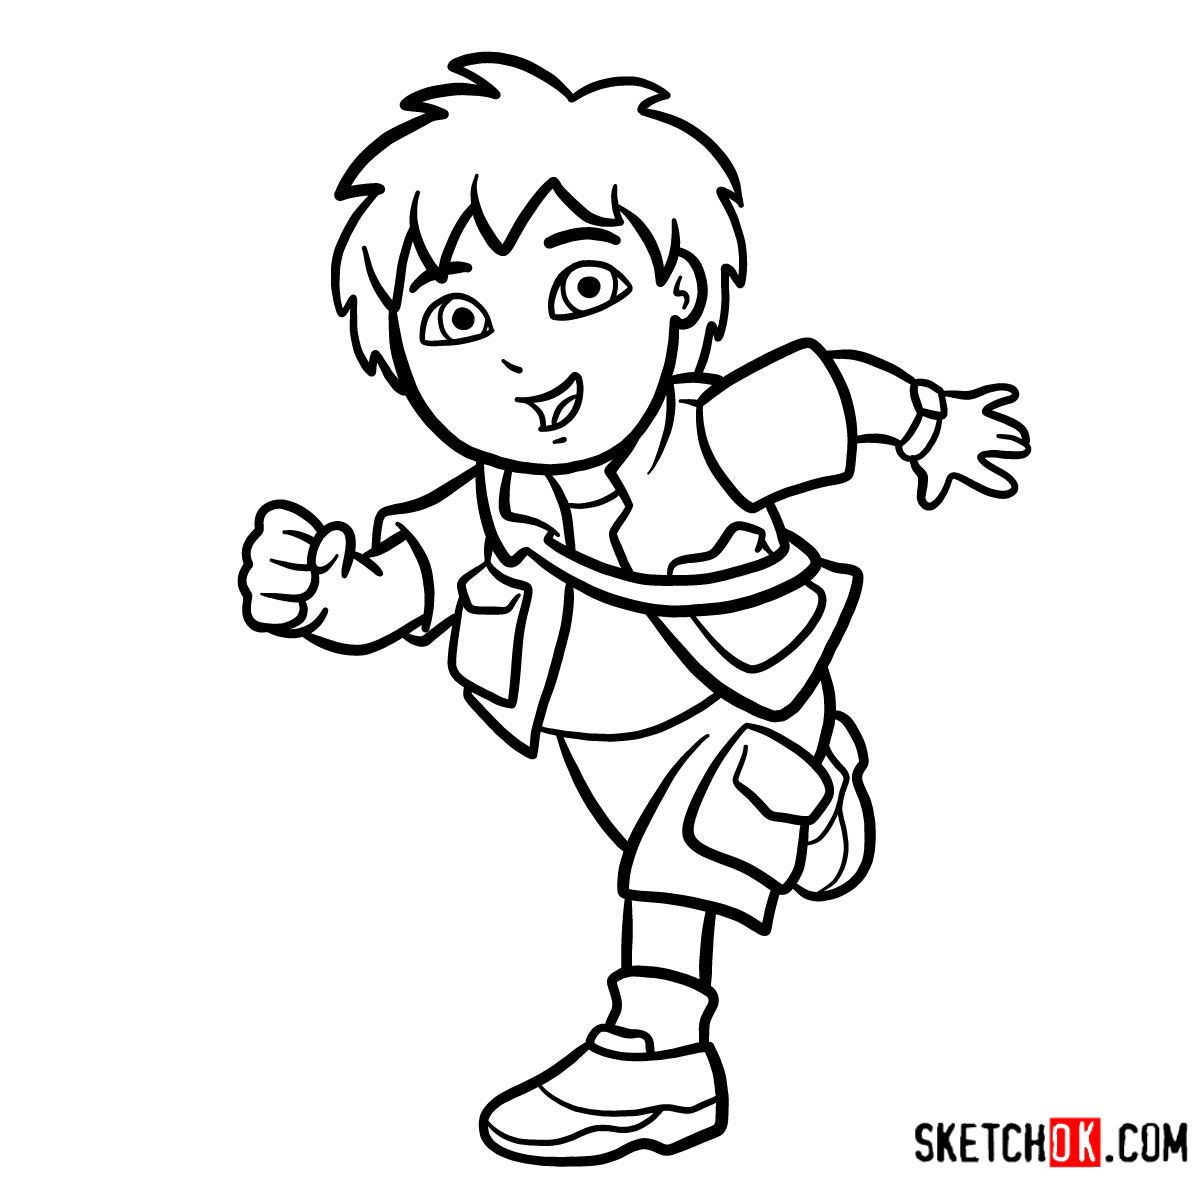 How to draw Diego | Dora the Explorer